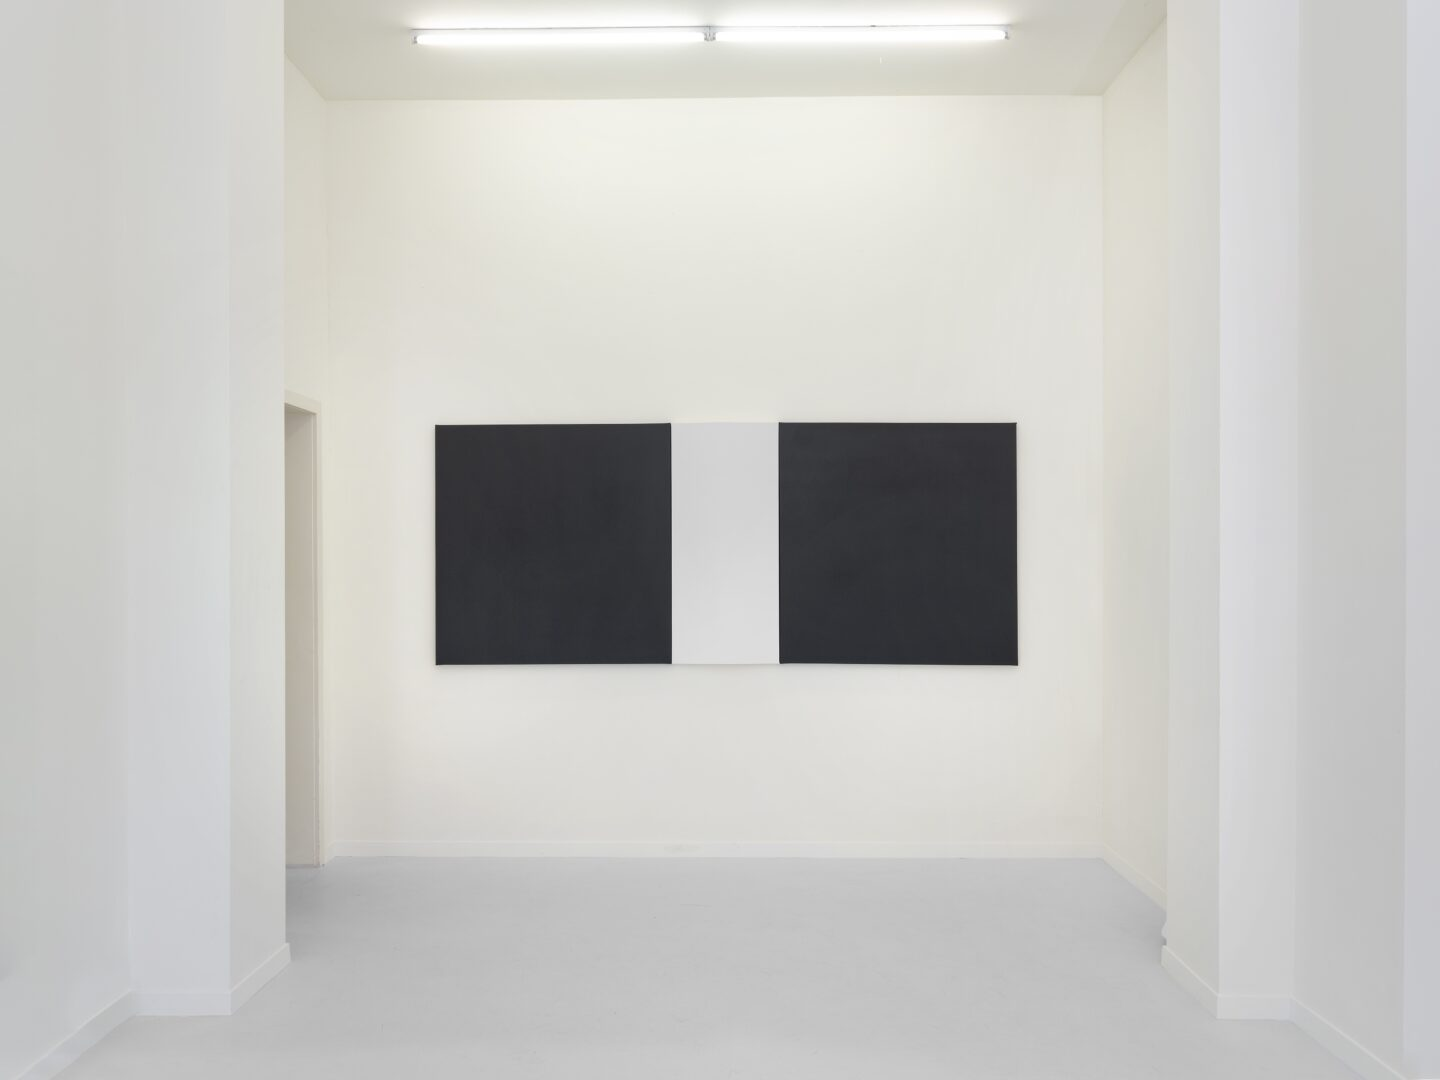 Exhibition View Frederic Gabioud Soloshow «Double or Nothing; view on Untitled, 2019» at Lemoyne Project, Zurich, 2020 / Photo: Julien Gremaud / Courtesy: the artist and Lemoyne Project